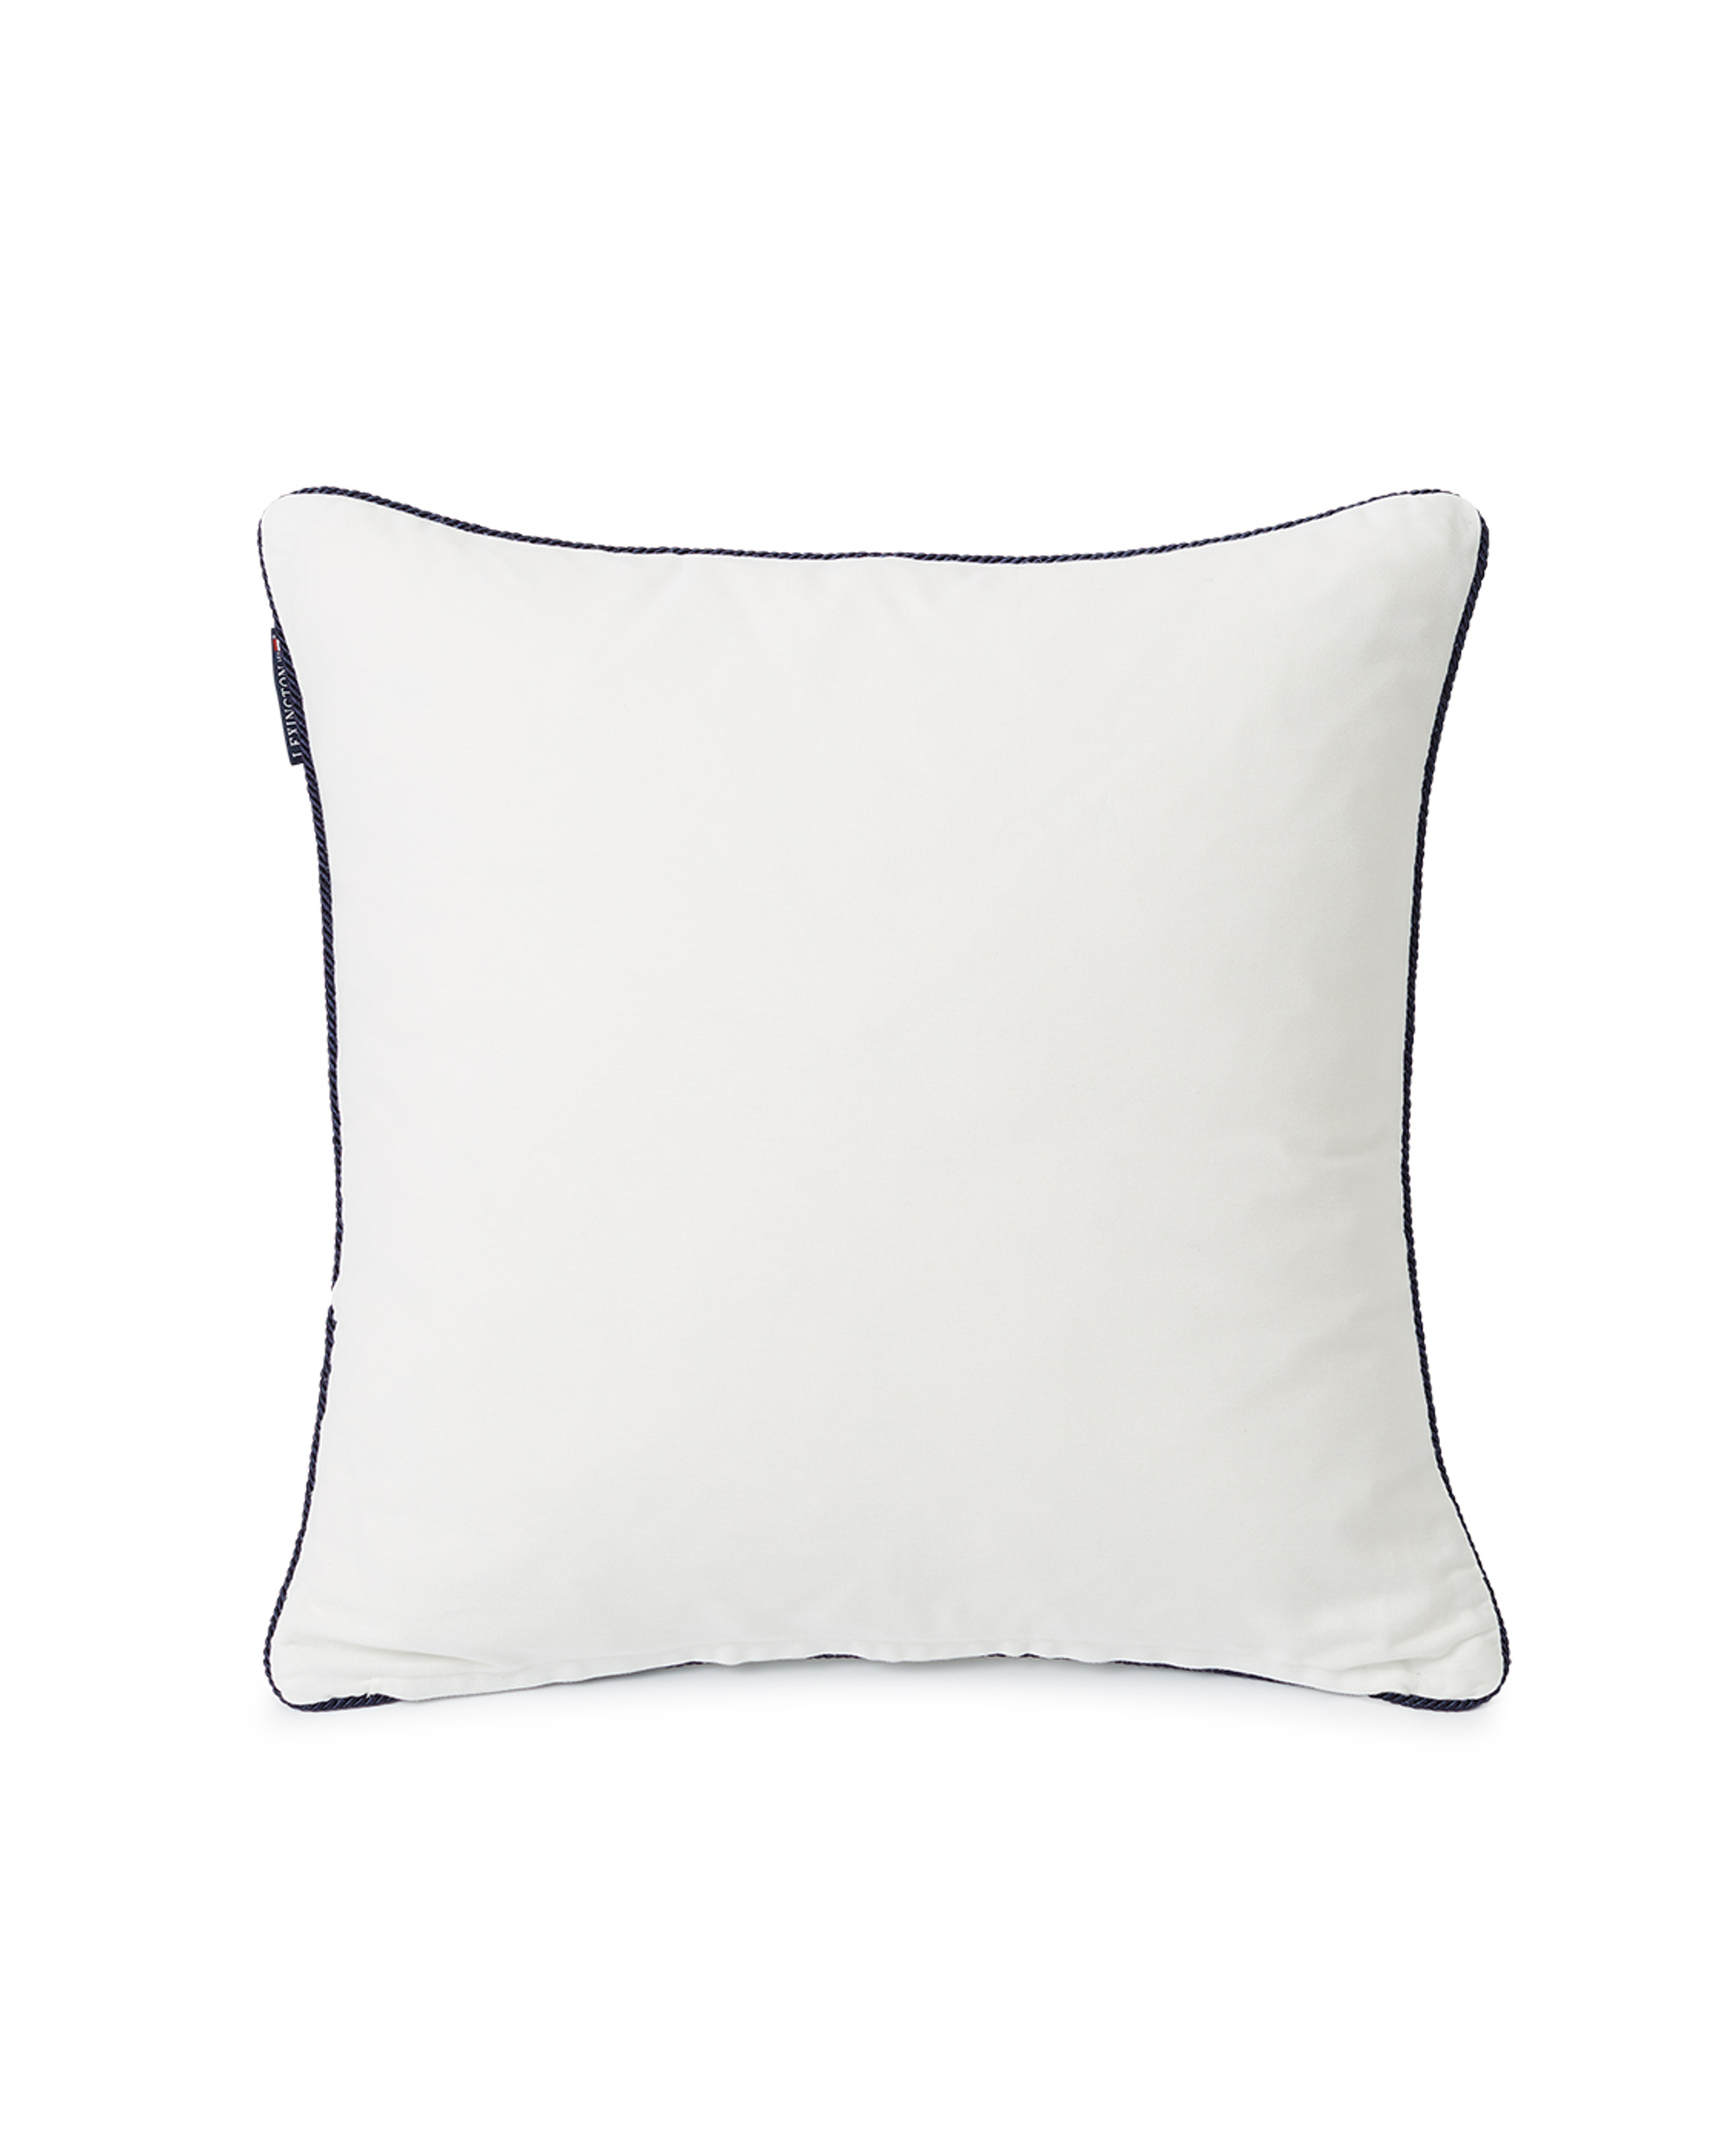 Mussels Cotton Twill Pillow Cover